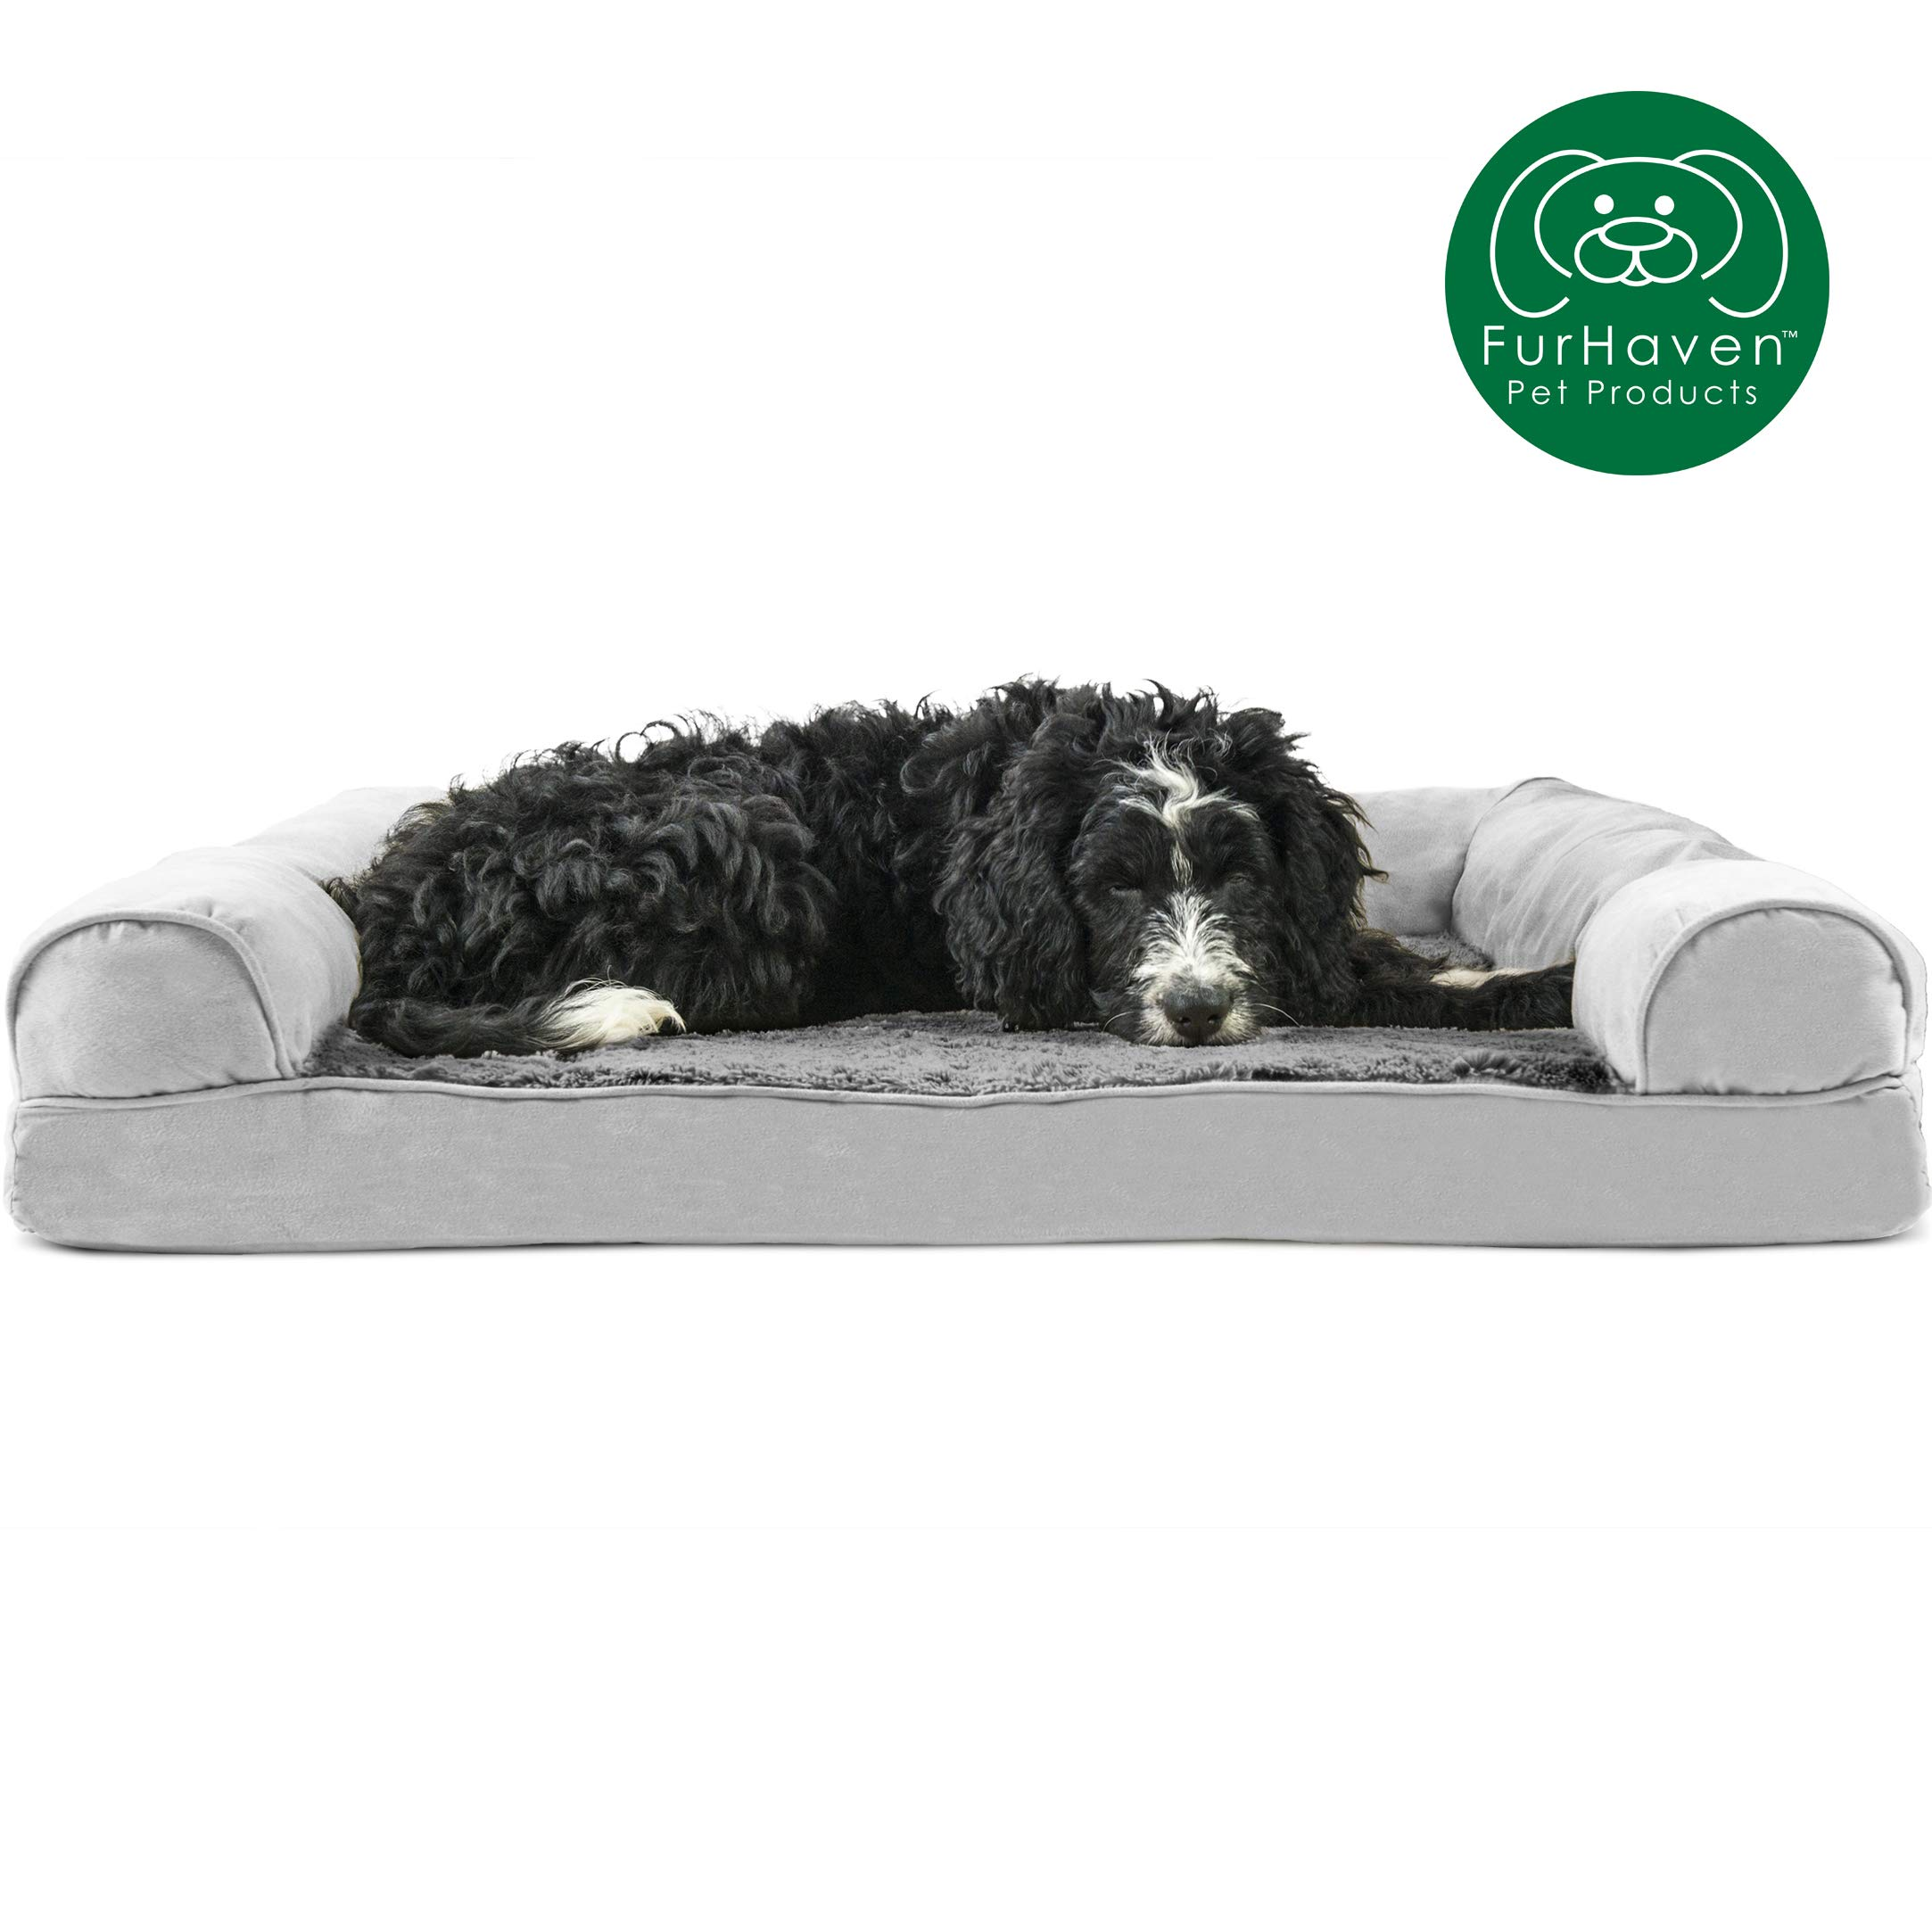 Furhaven Pet Dog Bed | Orthopedic Ultra Plush Faux Fur & Suede Traditional Sofa-Style Living Room Couch Pet Bed w/ Removable Cover for Dogs & Cats, Gray, Large by Furhaven